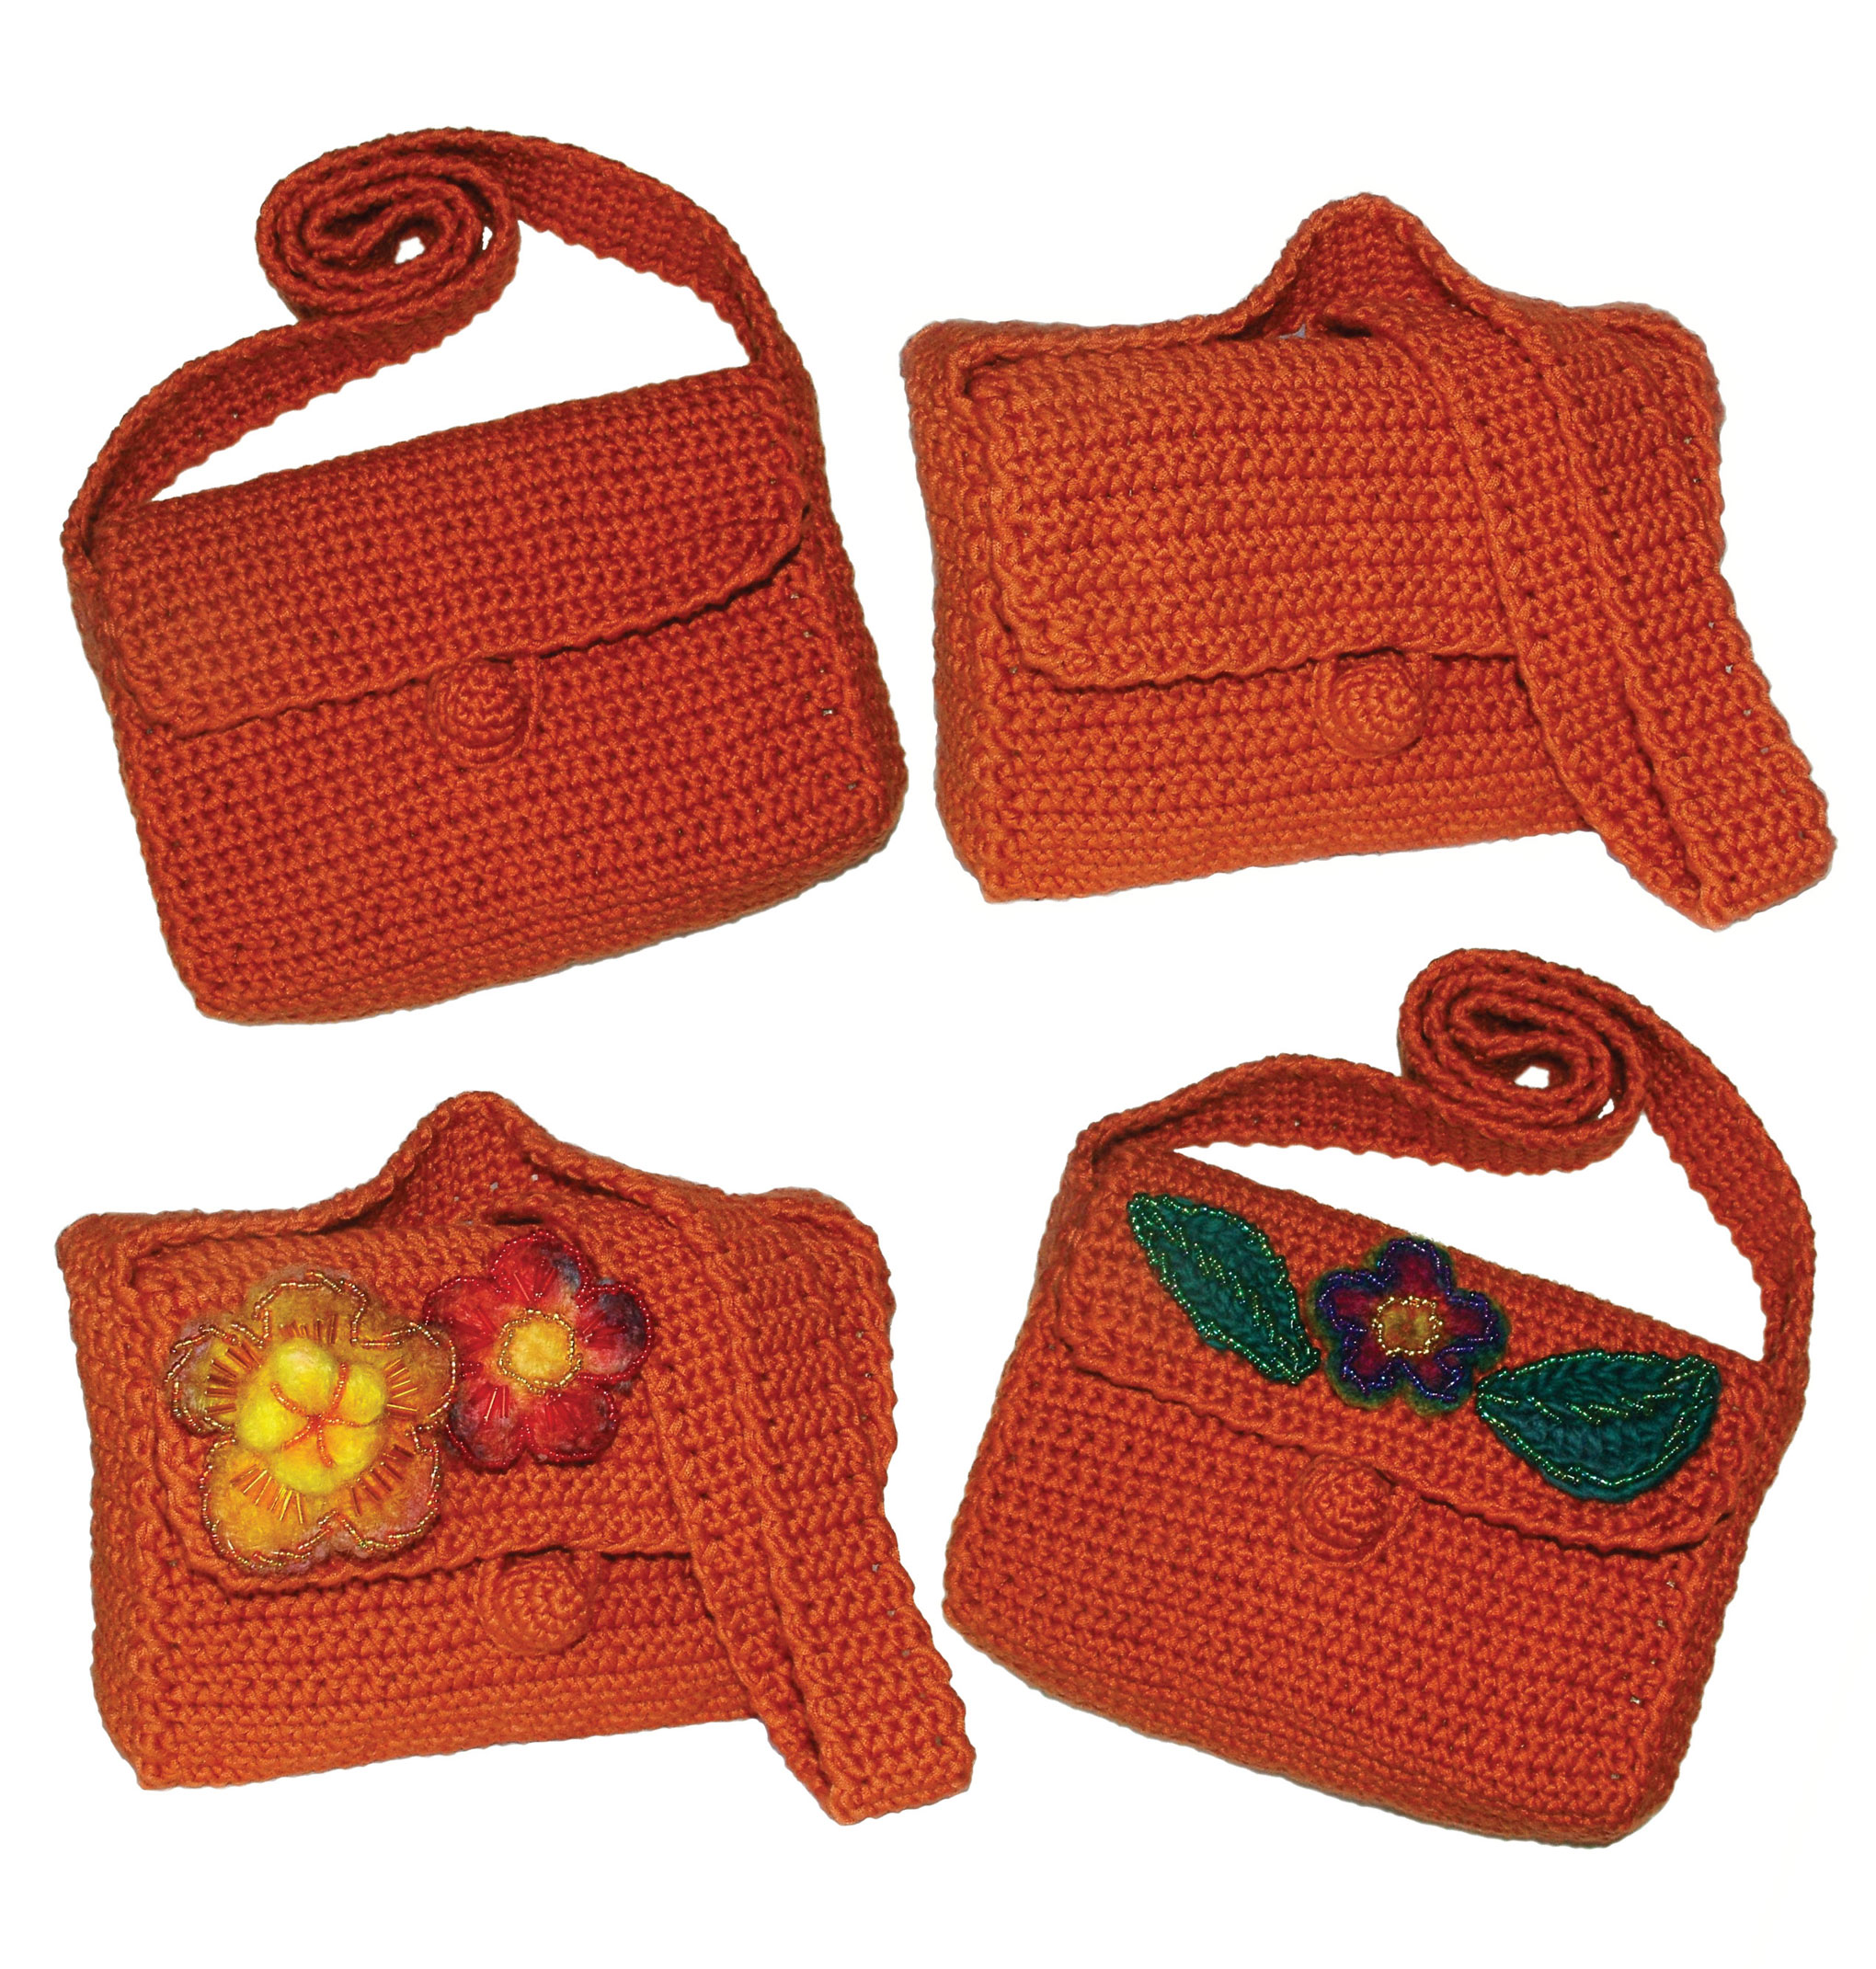 Easy Basic Crochet Bag/Purse Pattern ~ $6.90 AUD